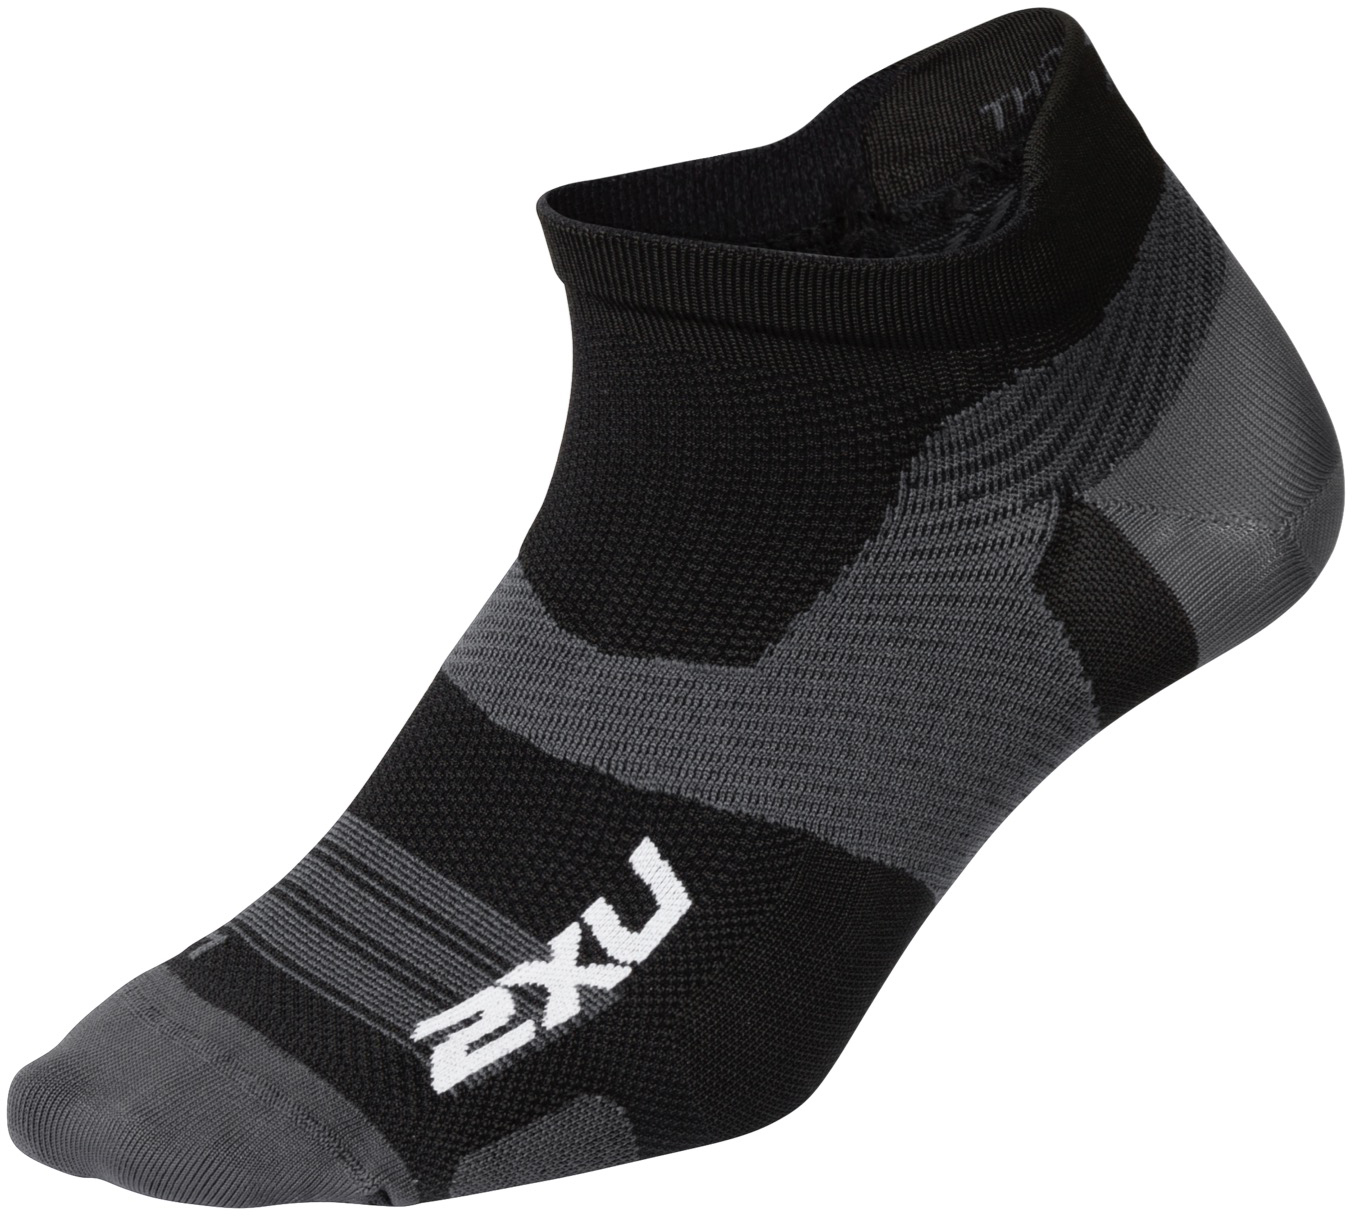 2xu - Vectr Ultralight No Show | cycling socks